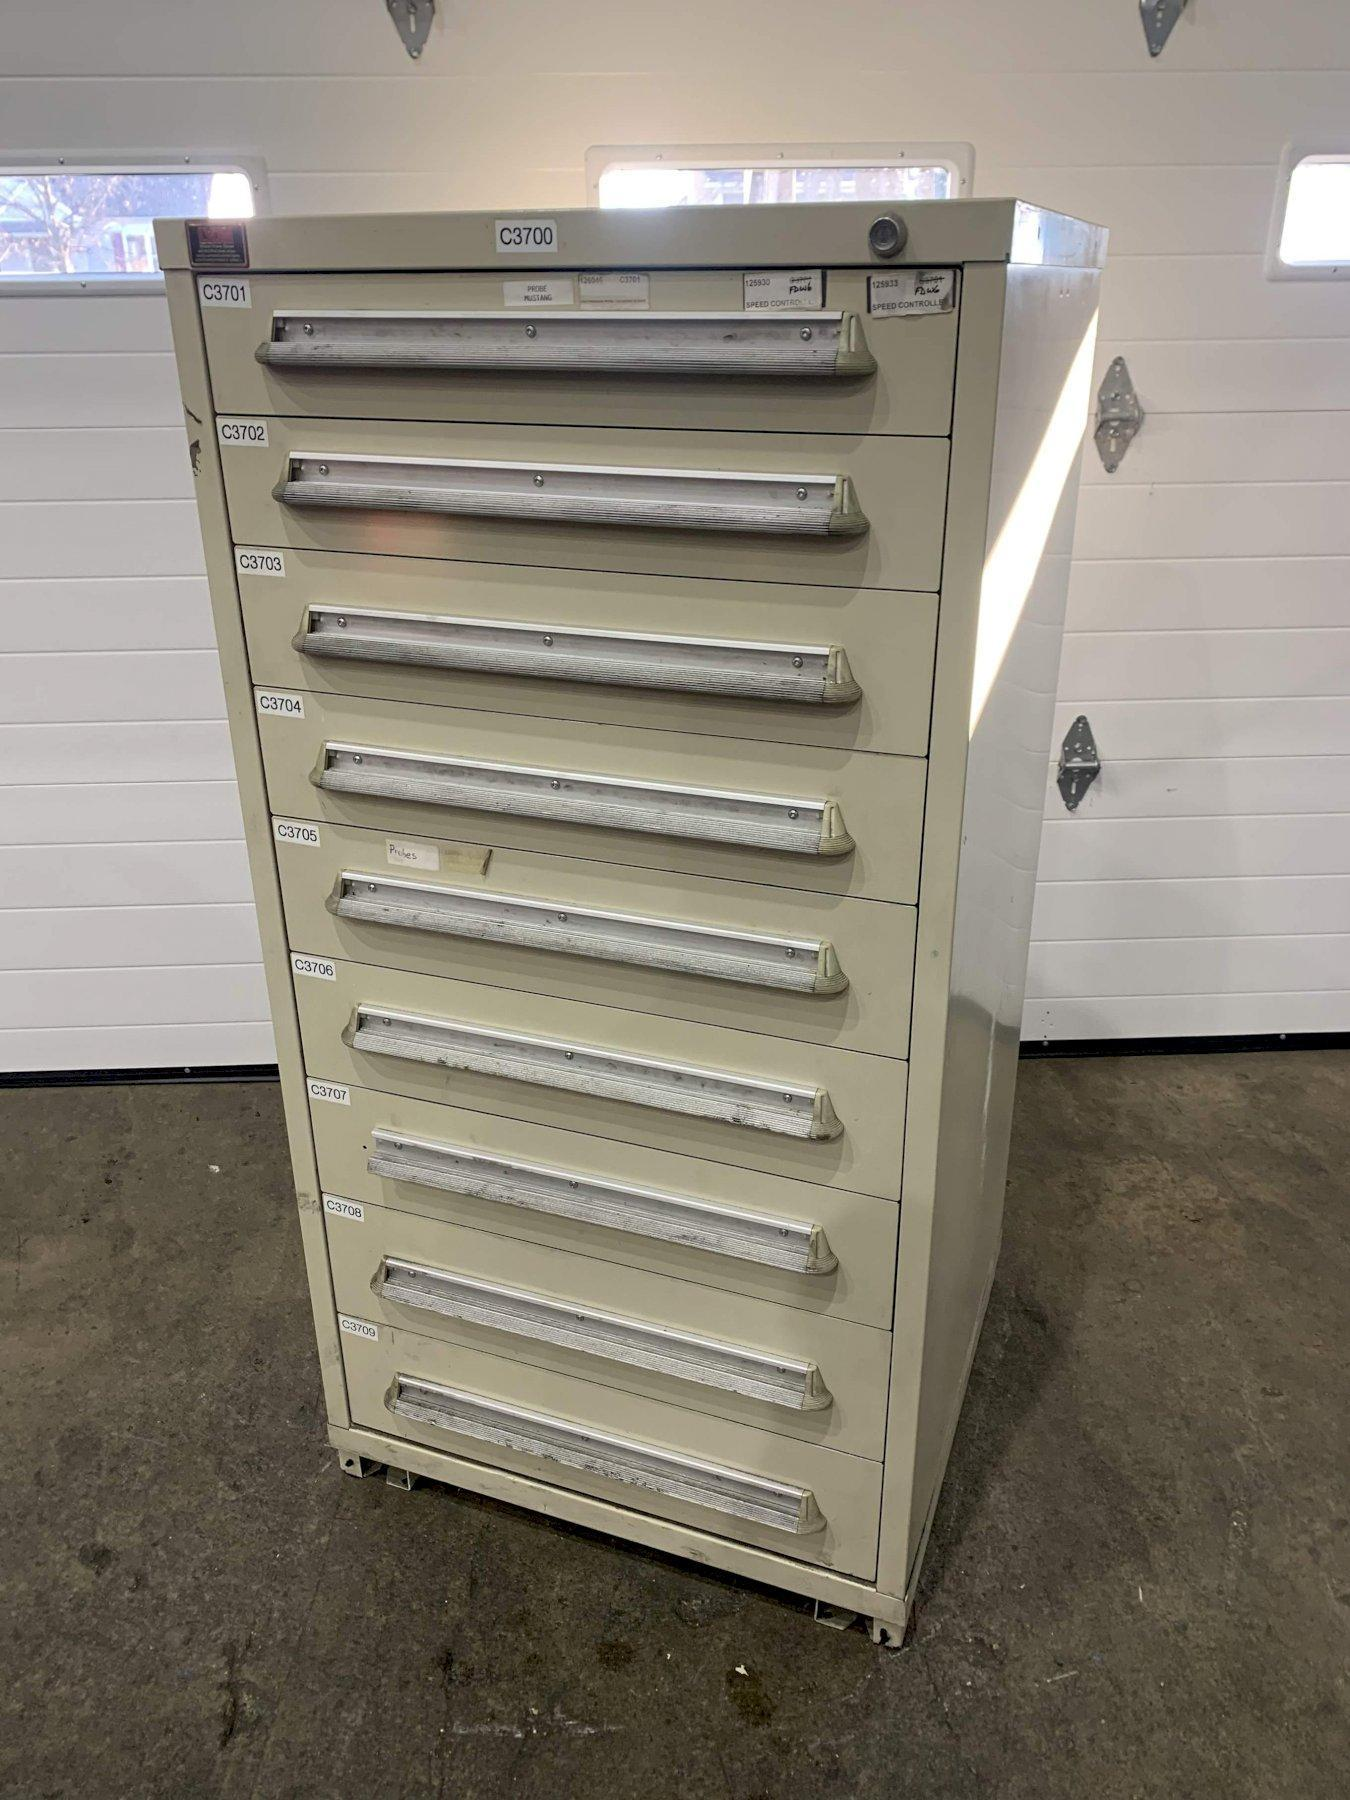 9 DRAWER LYON CABINET: STOCK #73707